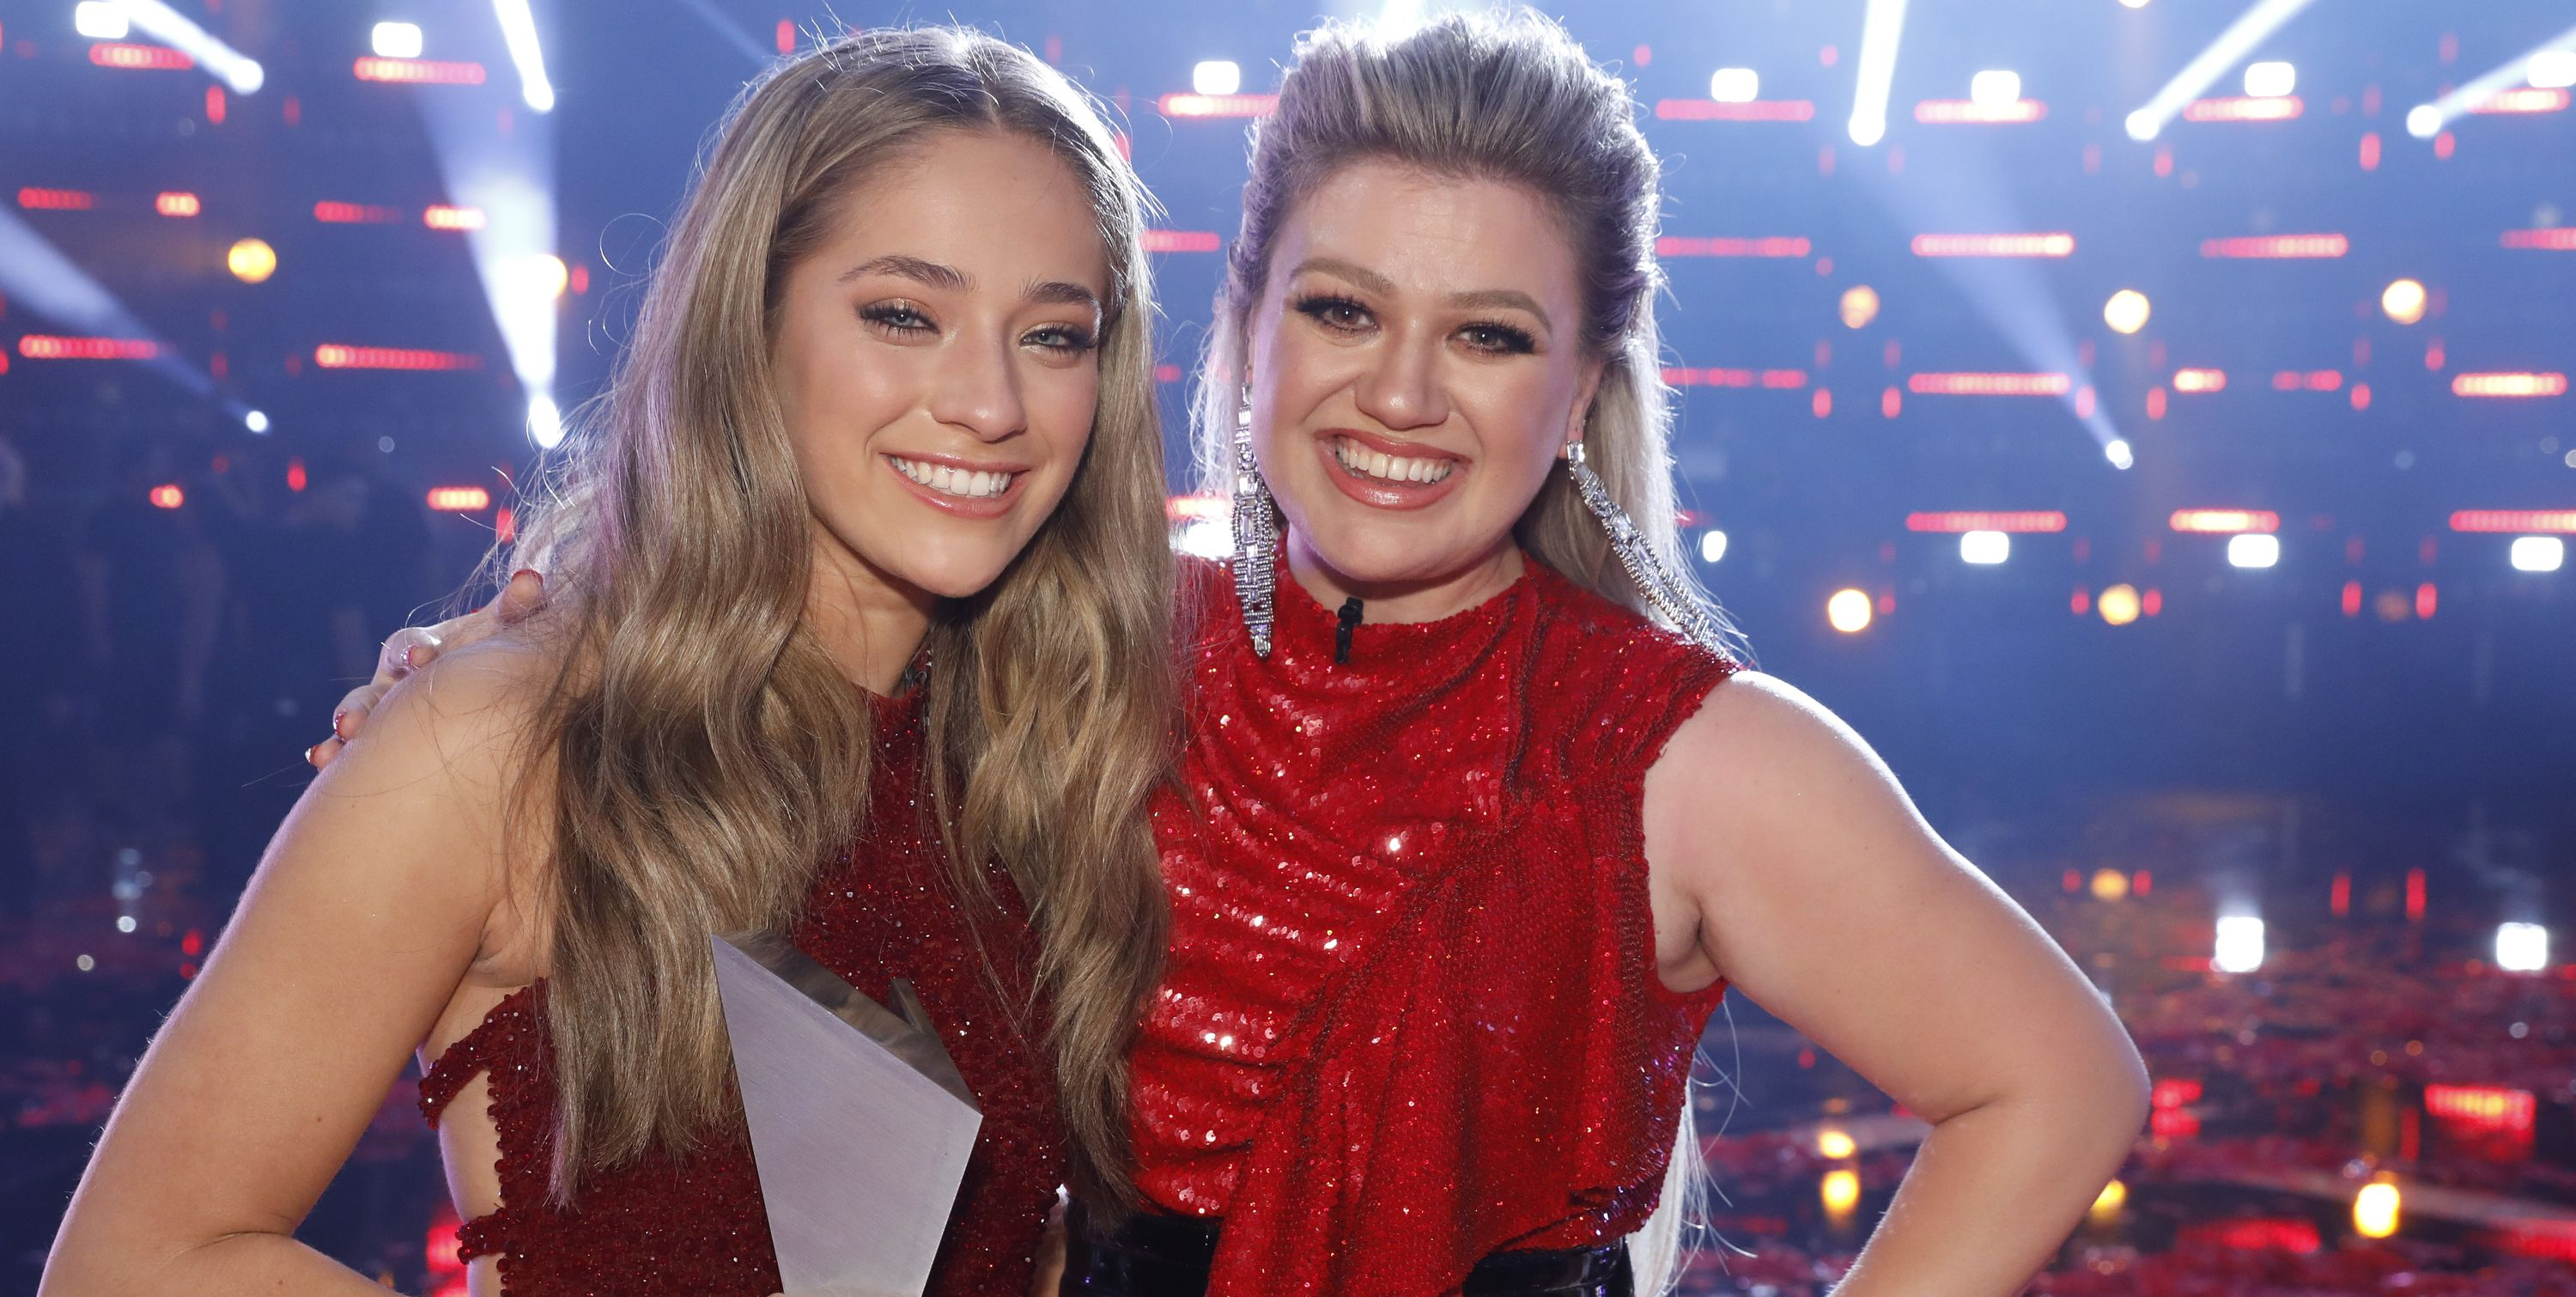 Is Kelly Clarkson Still in Touch With 'The Voice' Winner Brynn Cartelli?